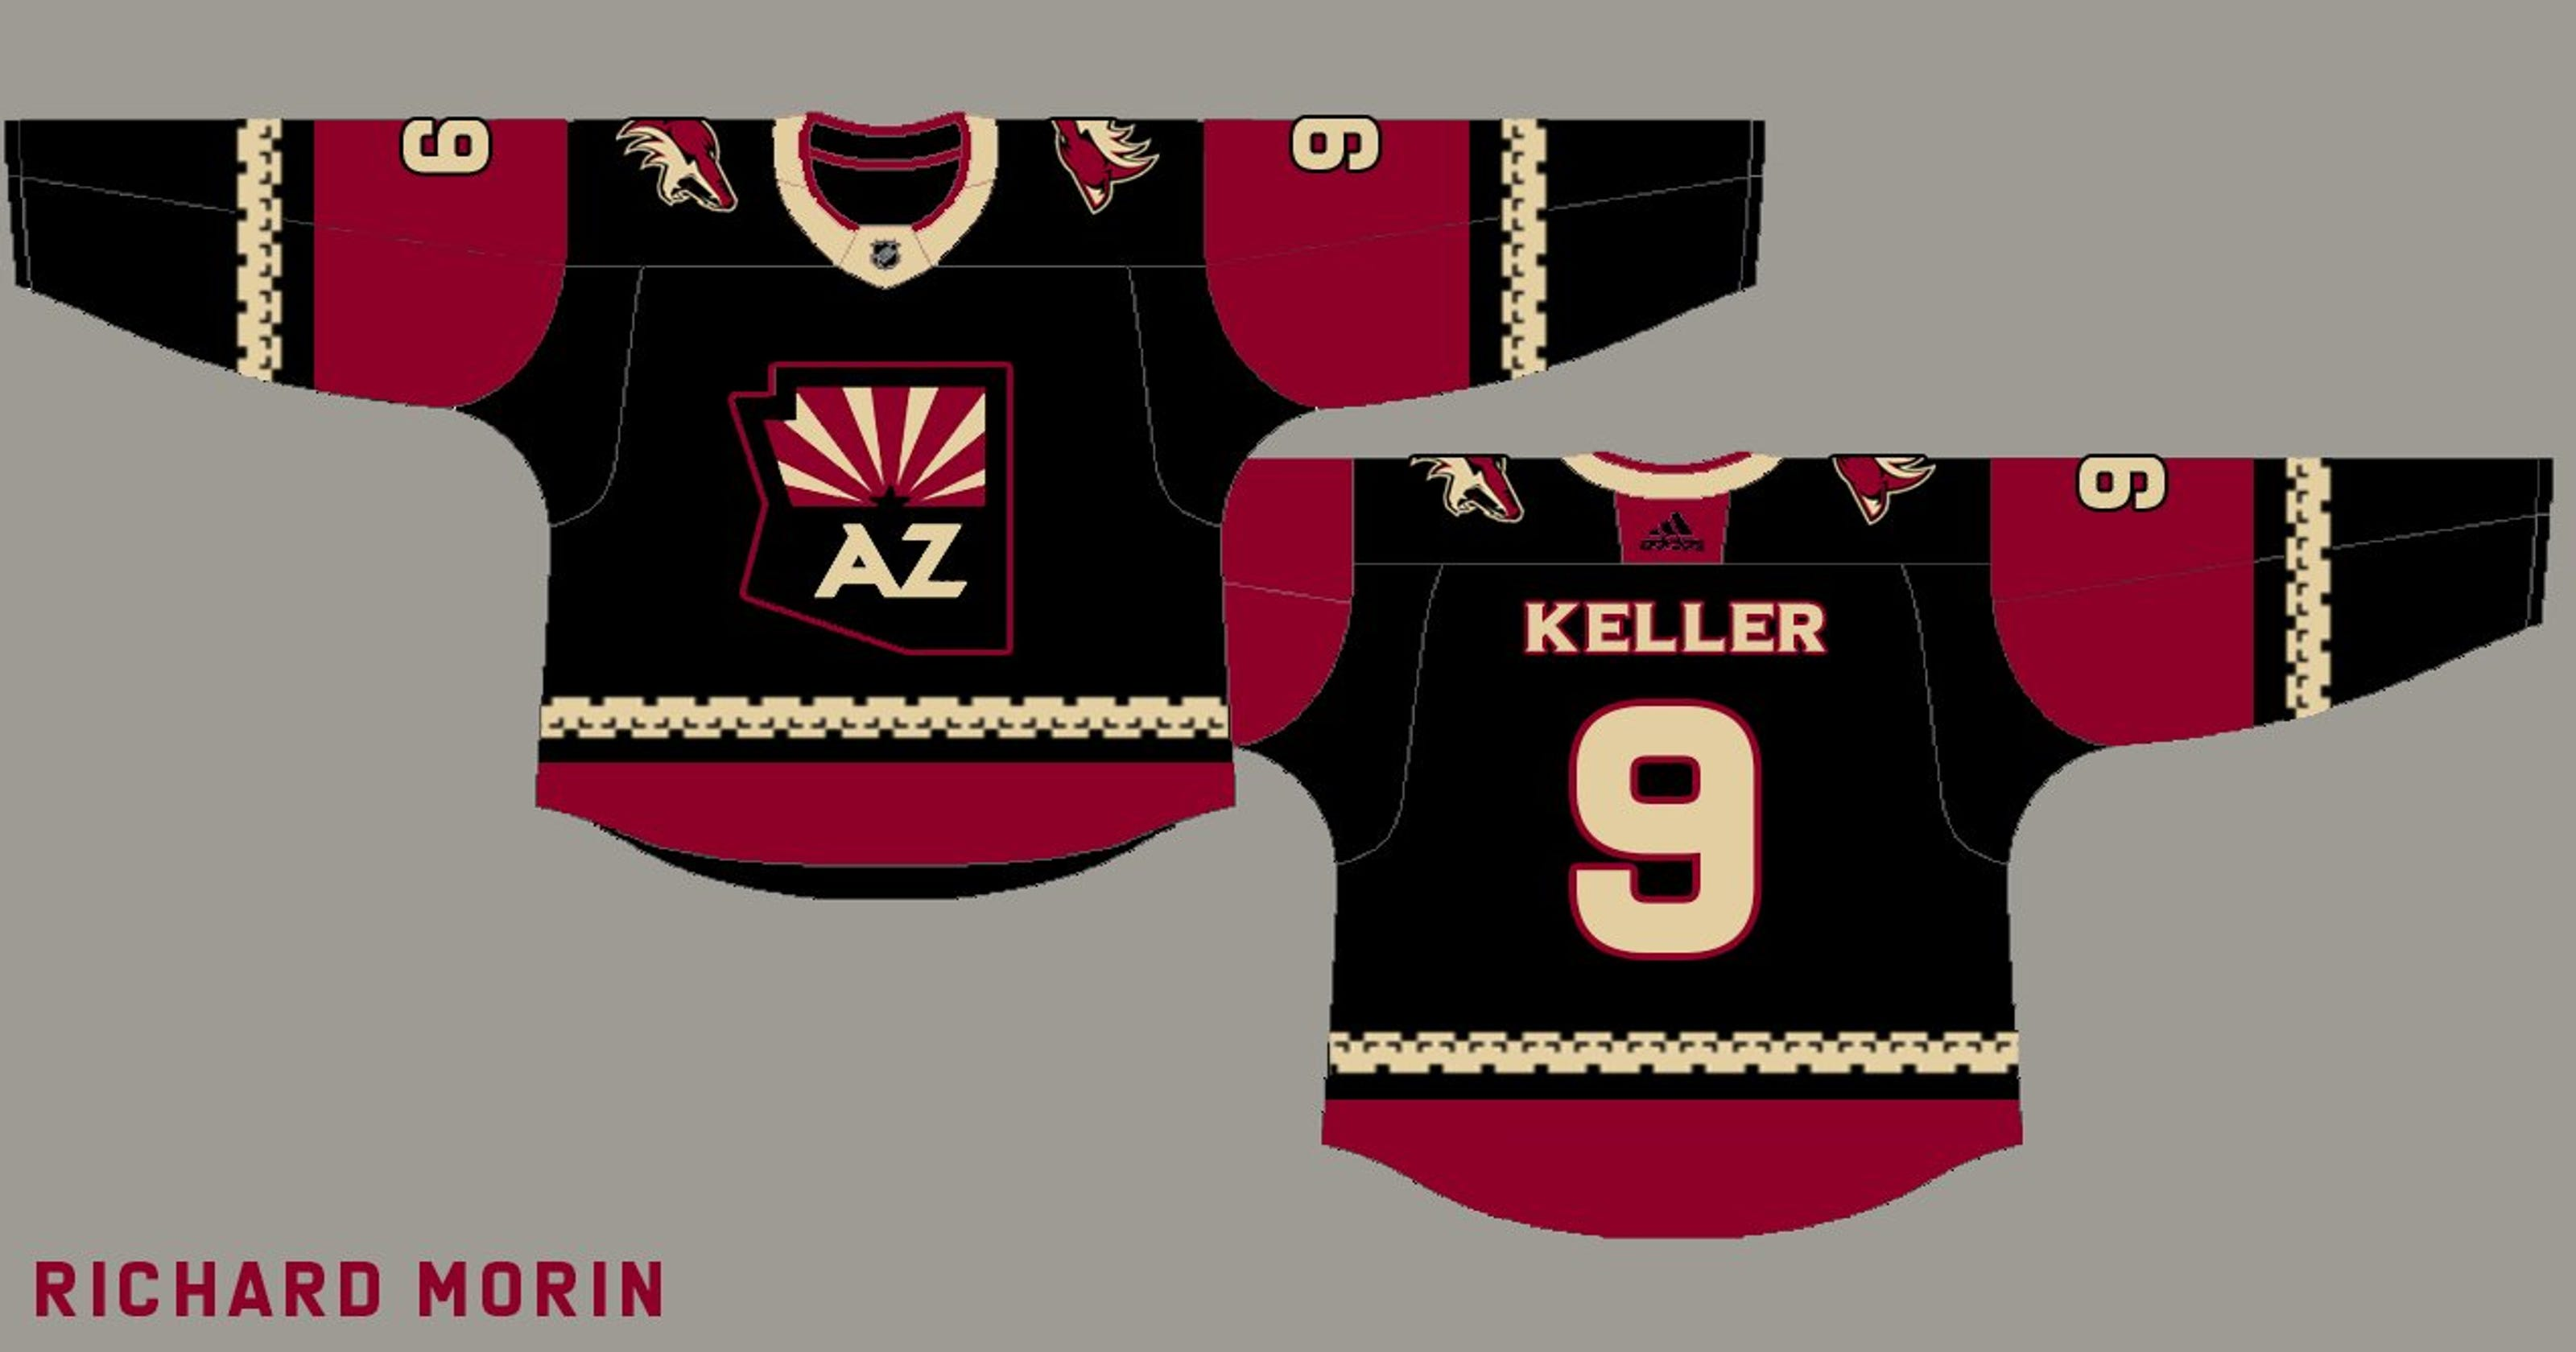 ba9e8c3fbe49 Arizona Coyotes third jersey  What will alternate sweater look like